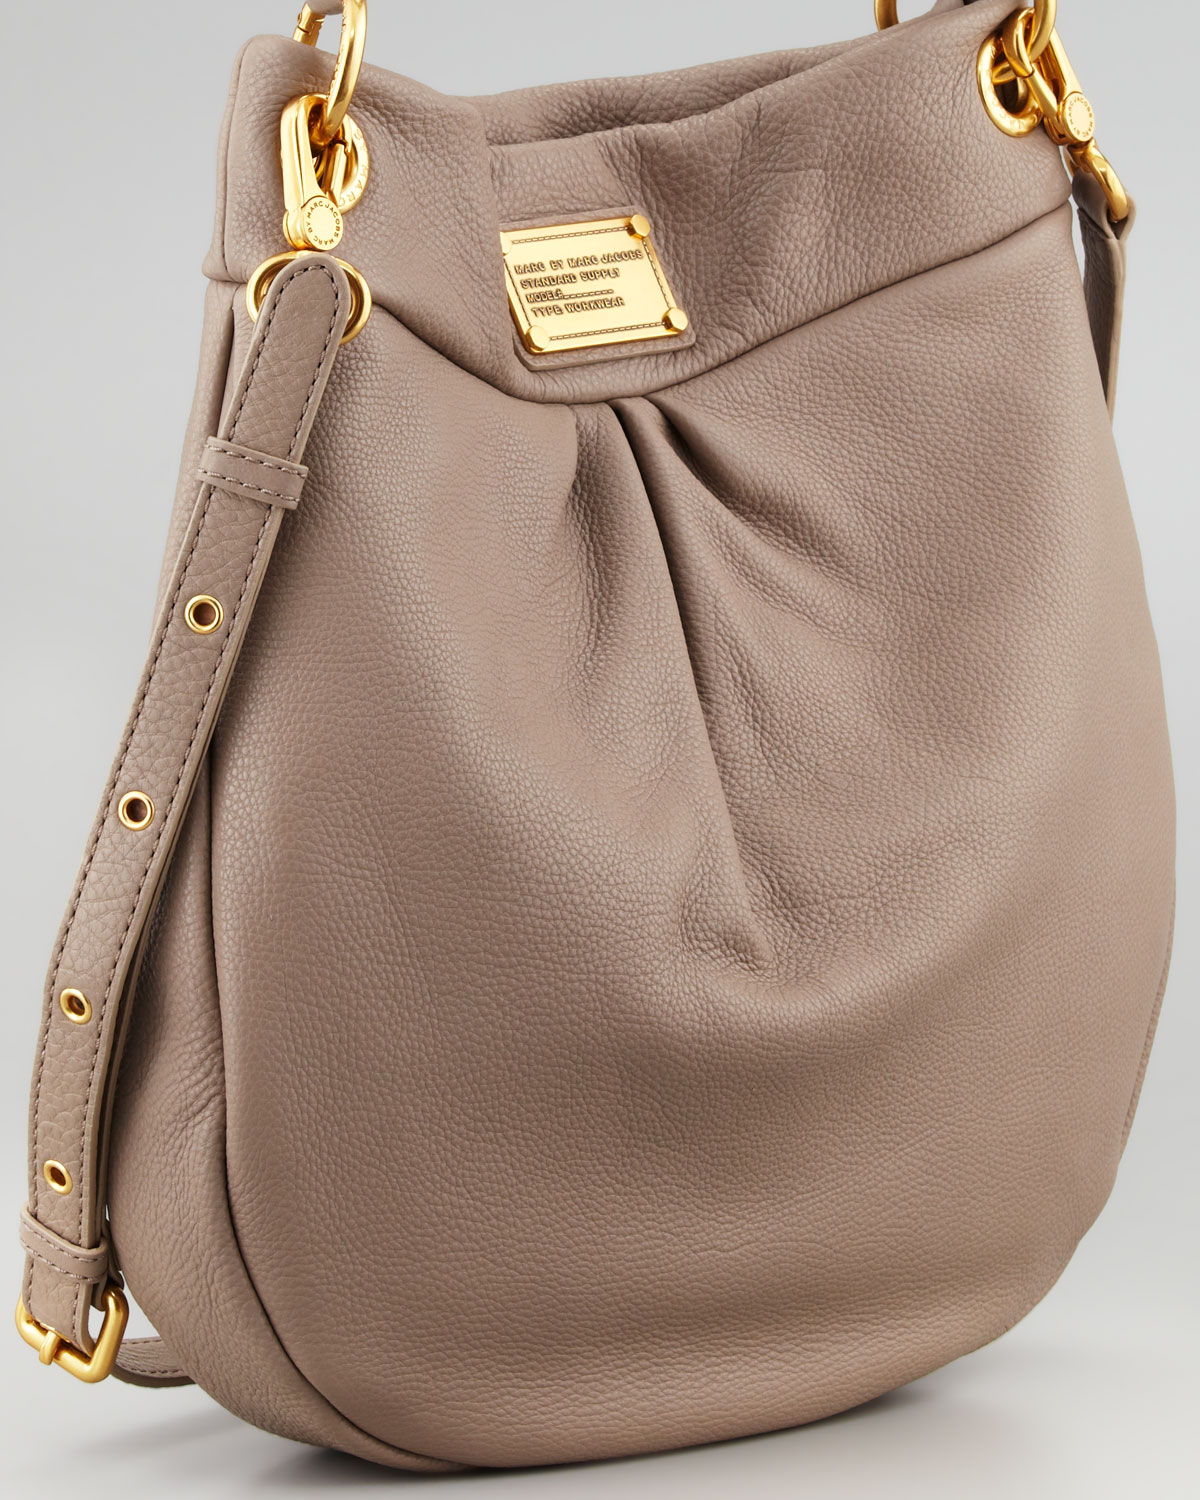 1b235c1c52d6 Lyst - Marc By Marc Jacobs Classic Q Hillier Hobo Bag in Natural